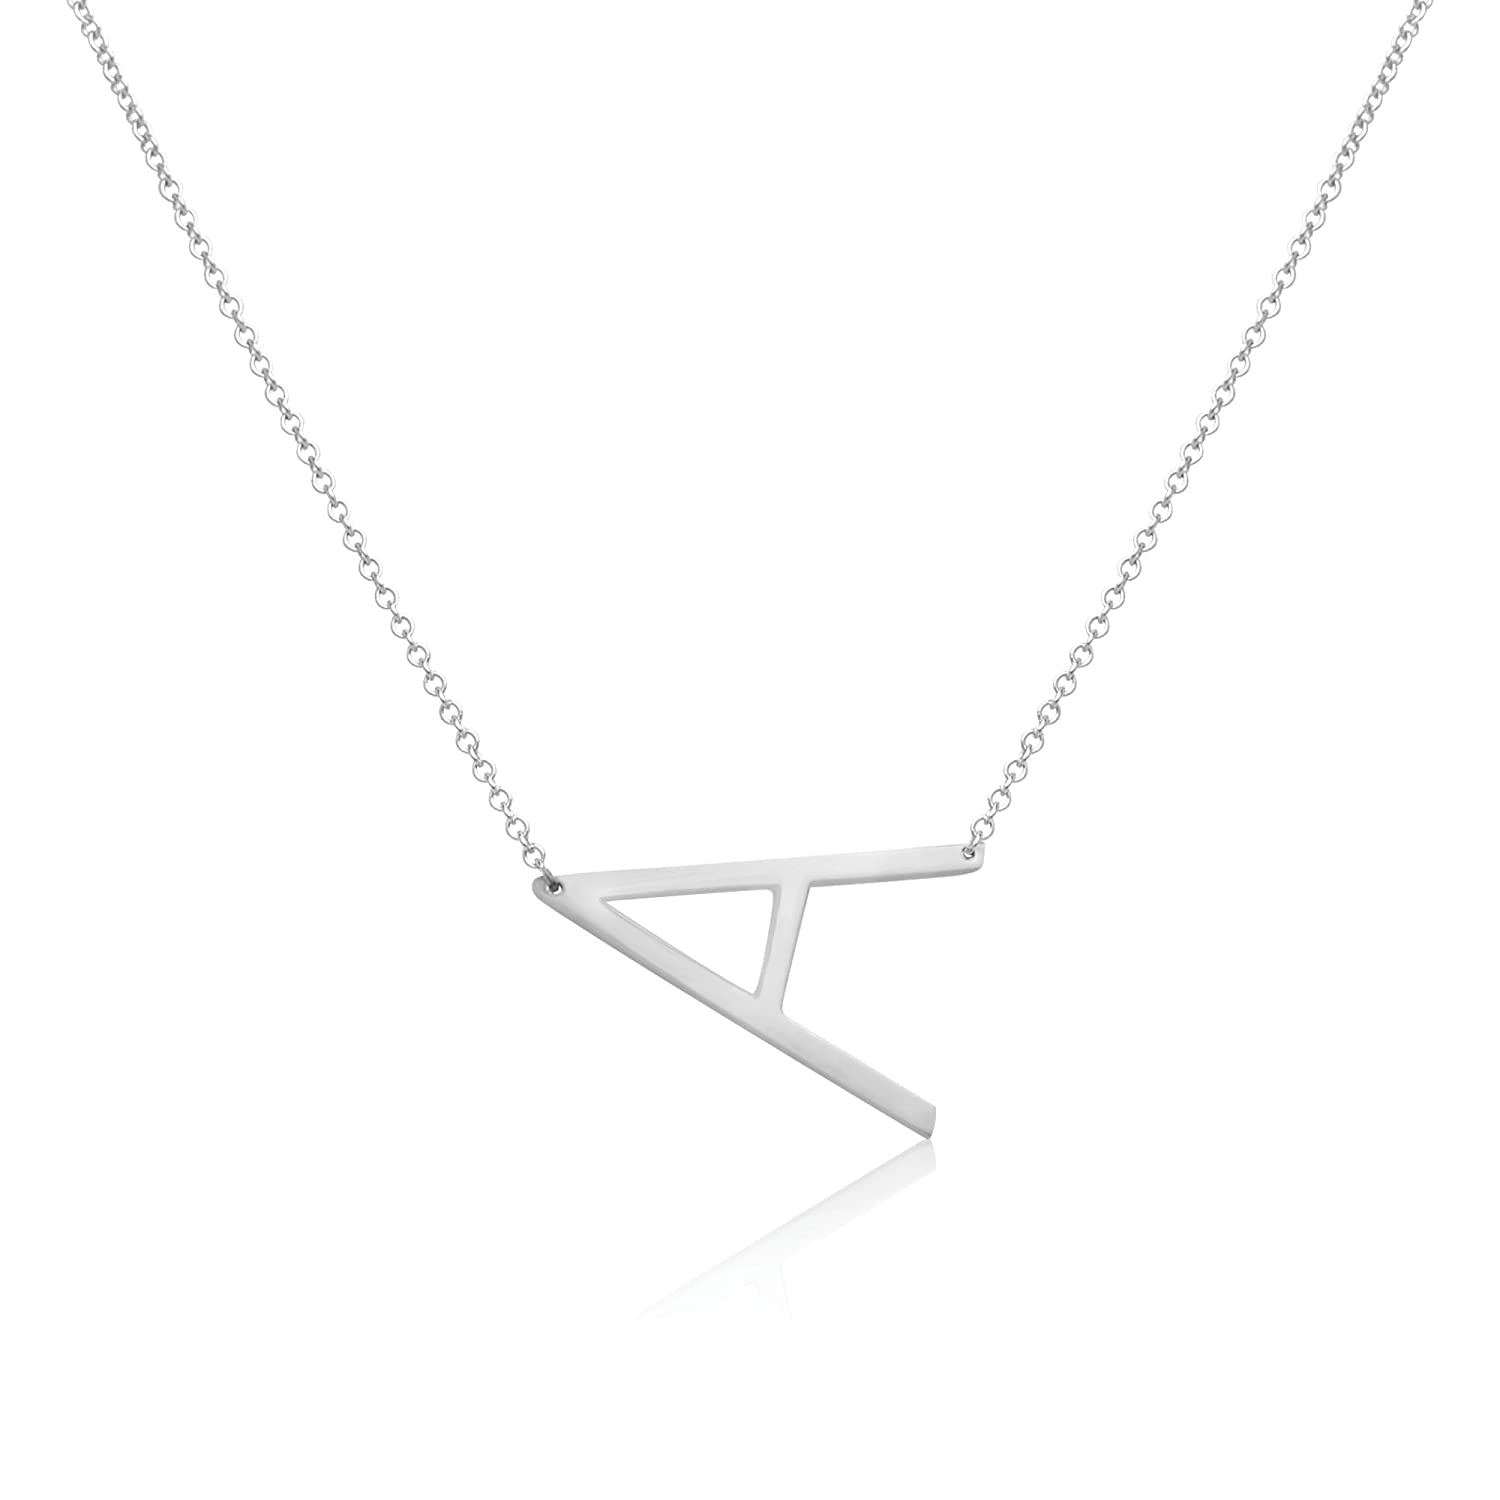 34c662a79269 Amazon.com: Beautiful Personalized XL Silver Stainless Steel Side Initial  Necklace Pendant with - A Letter: Jewelry